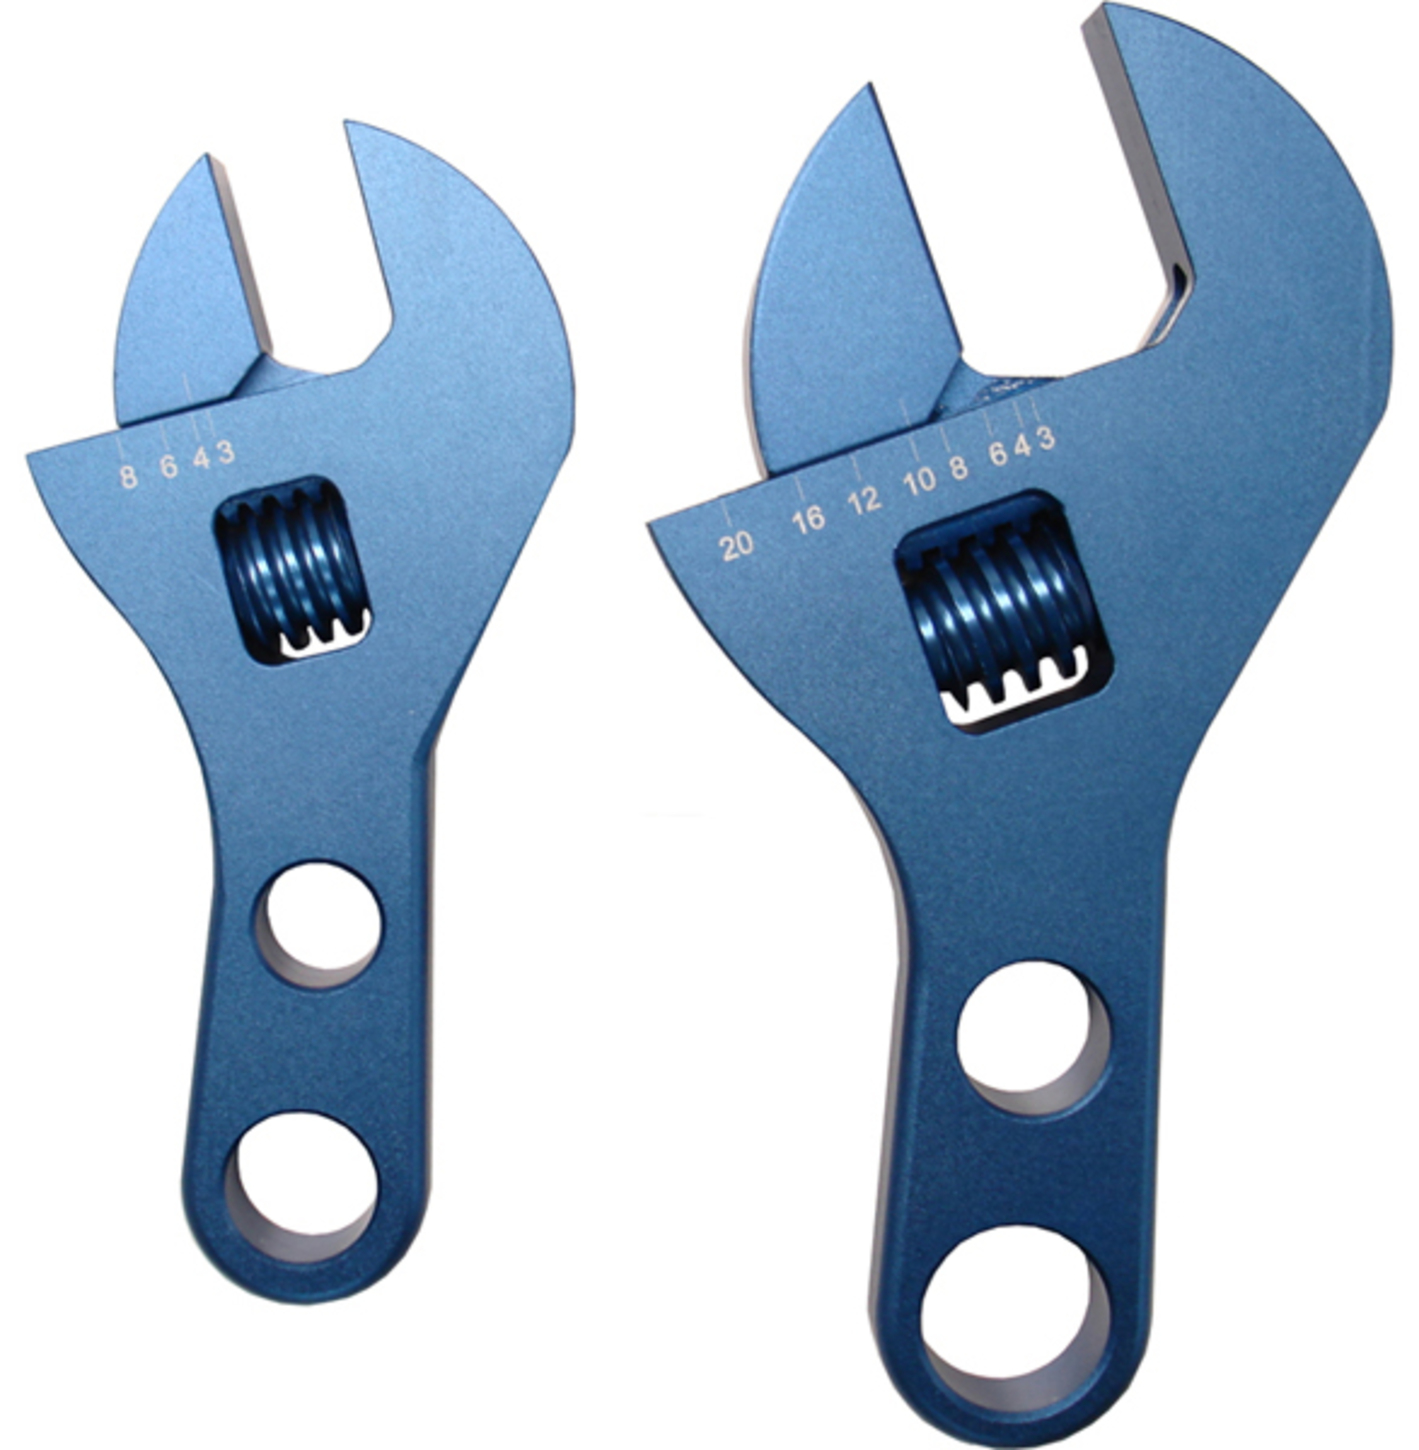 Proform Adjustable AN Fitting Wrench Set Aluminum Compact Stubby Design Blue Anodized Proform